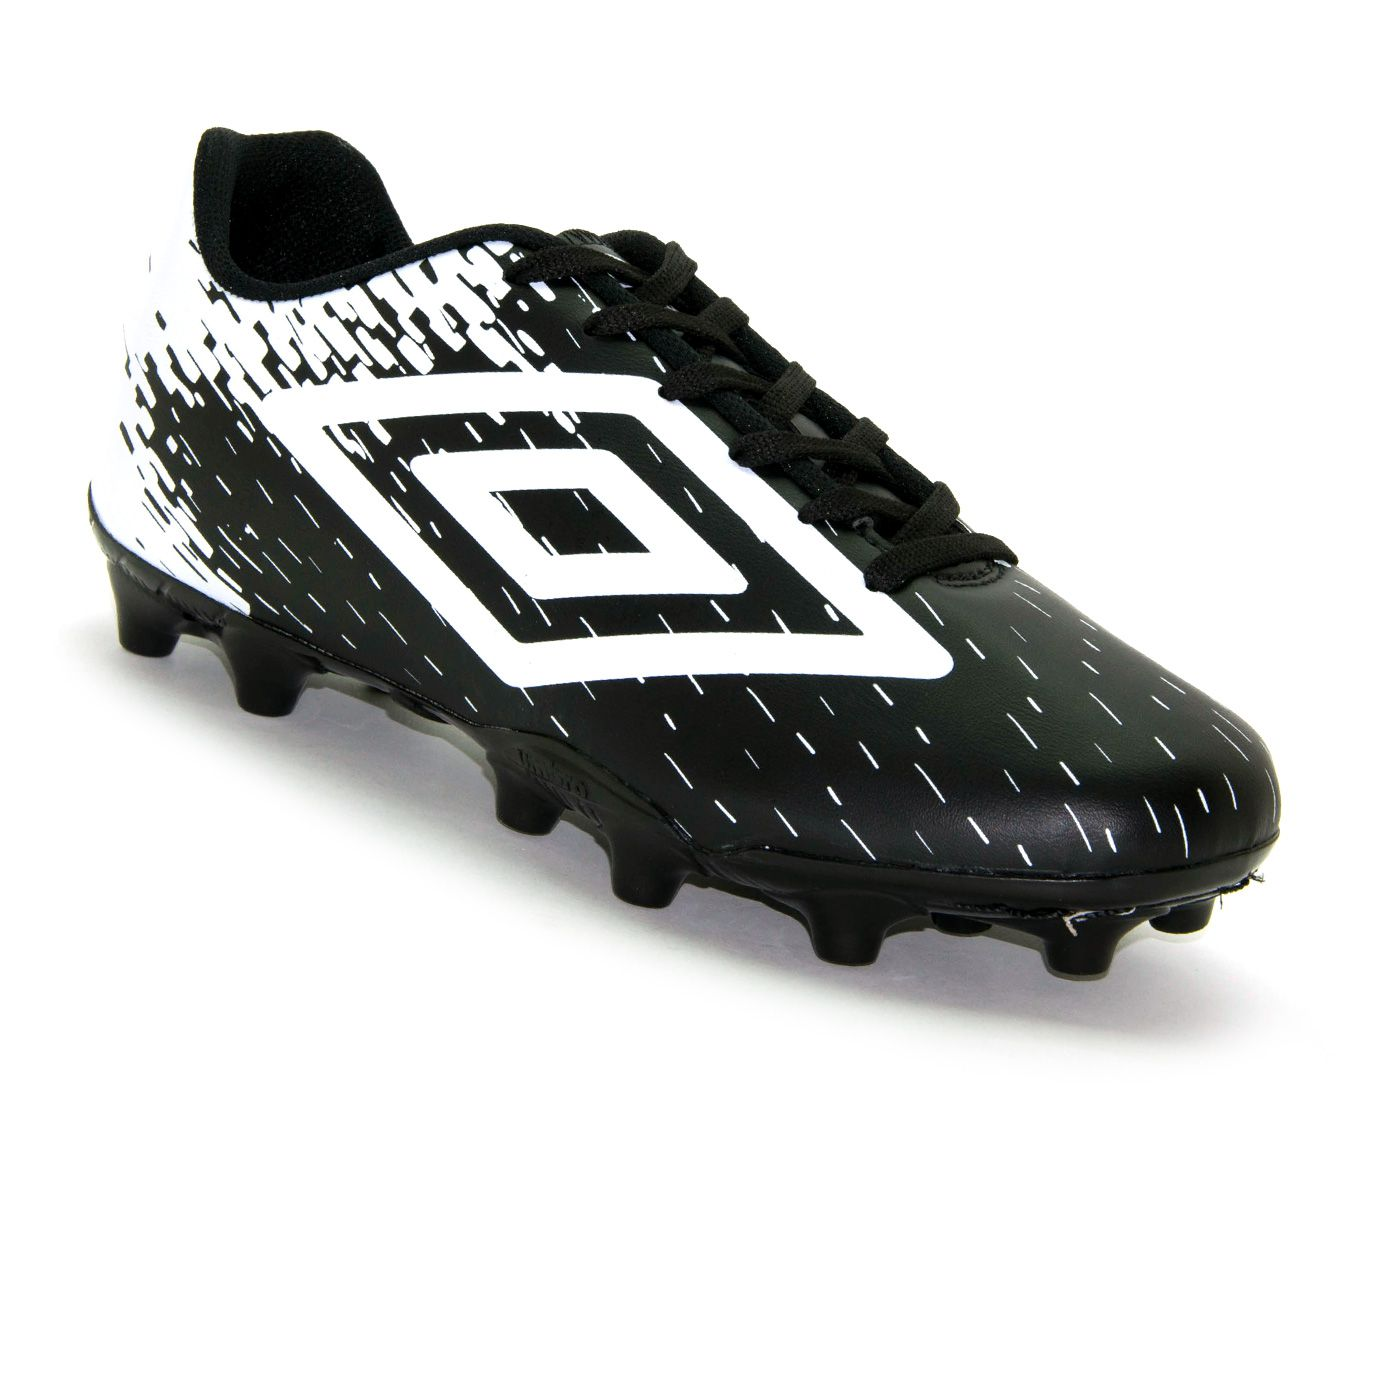 CHUTEIRA UMBRO ACID - 773579